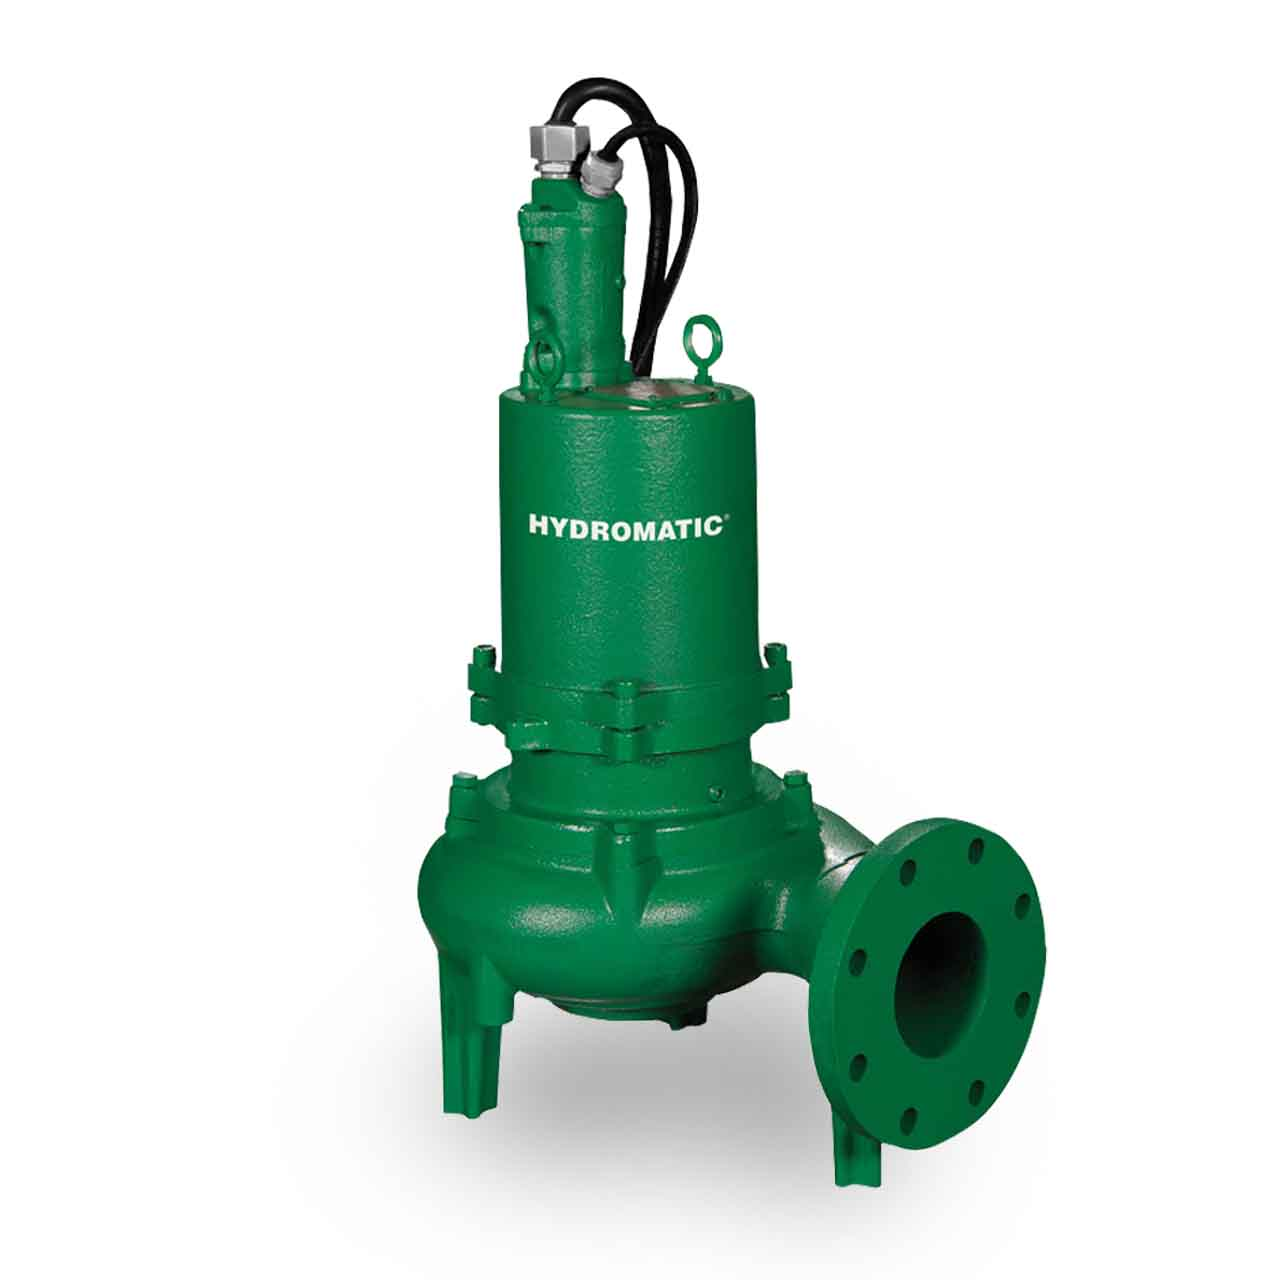 Hydromatic Pump Hydromatic S4n500m4 4 Submersible Solids